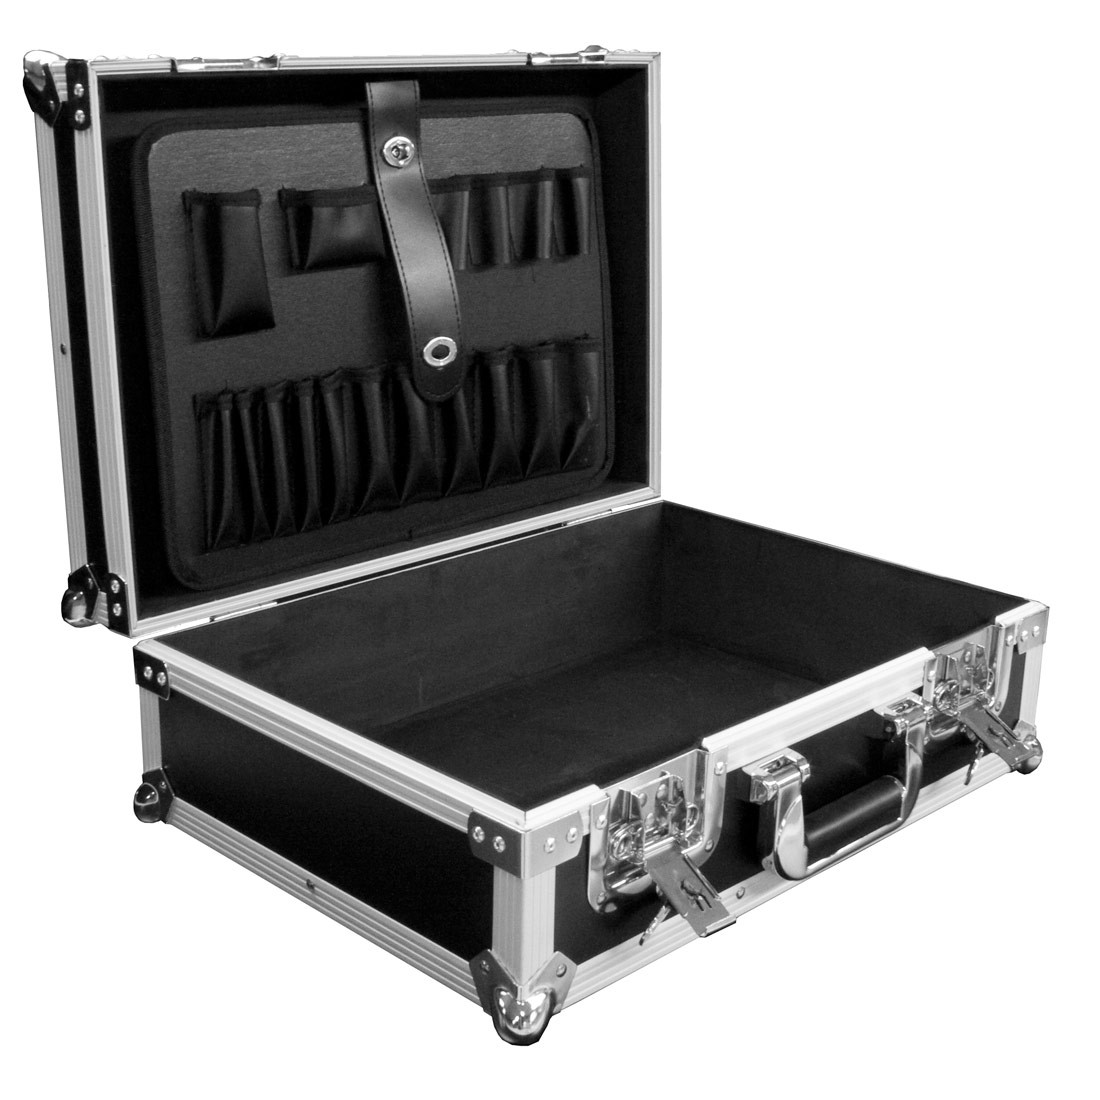 Acf swtool box cases other cases products adj group acf swtool box sciox Gallery